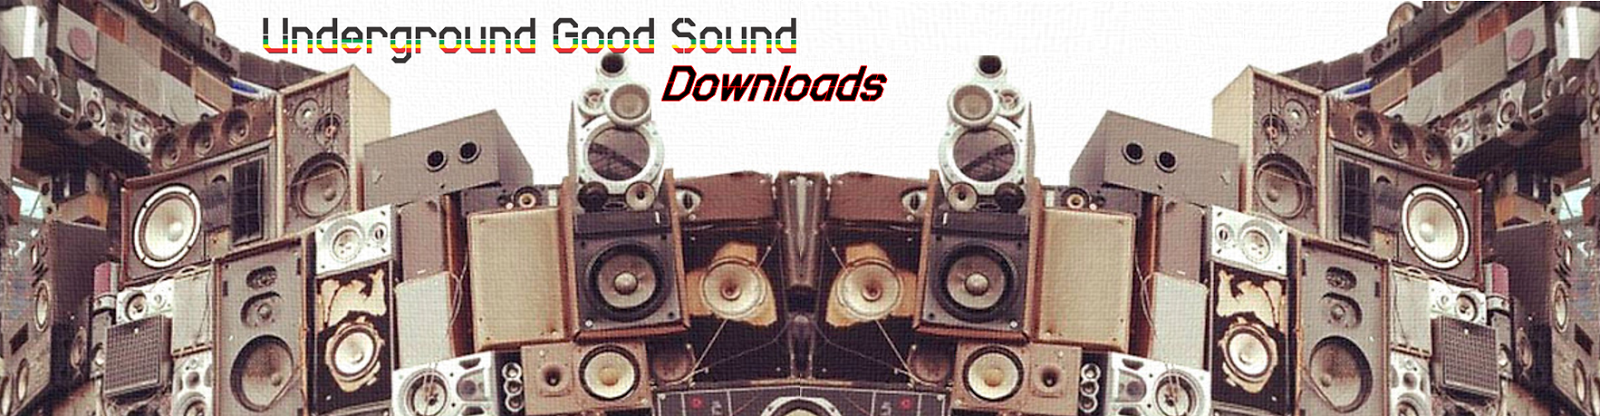 Underground Good Sound Download